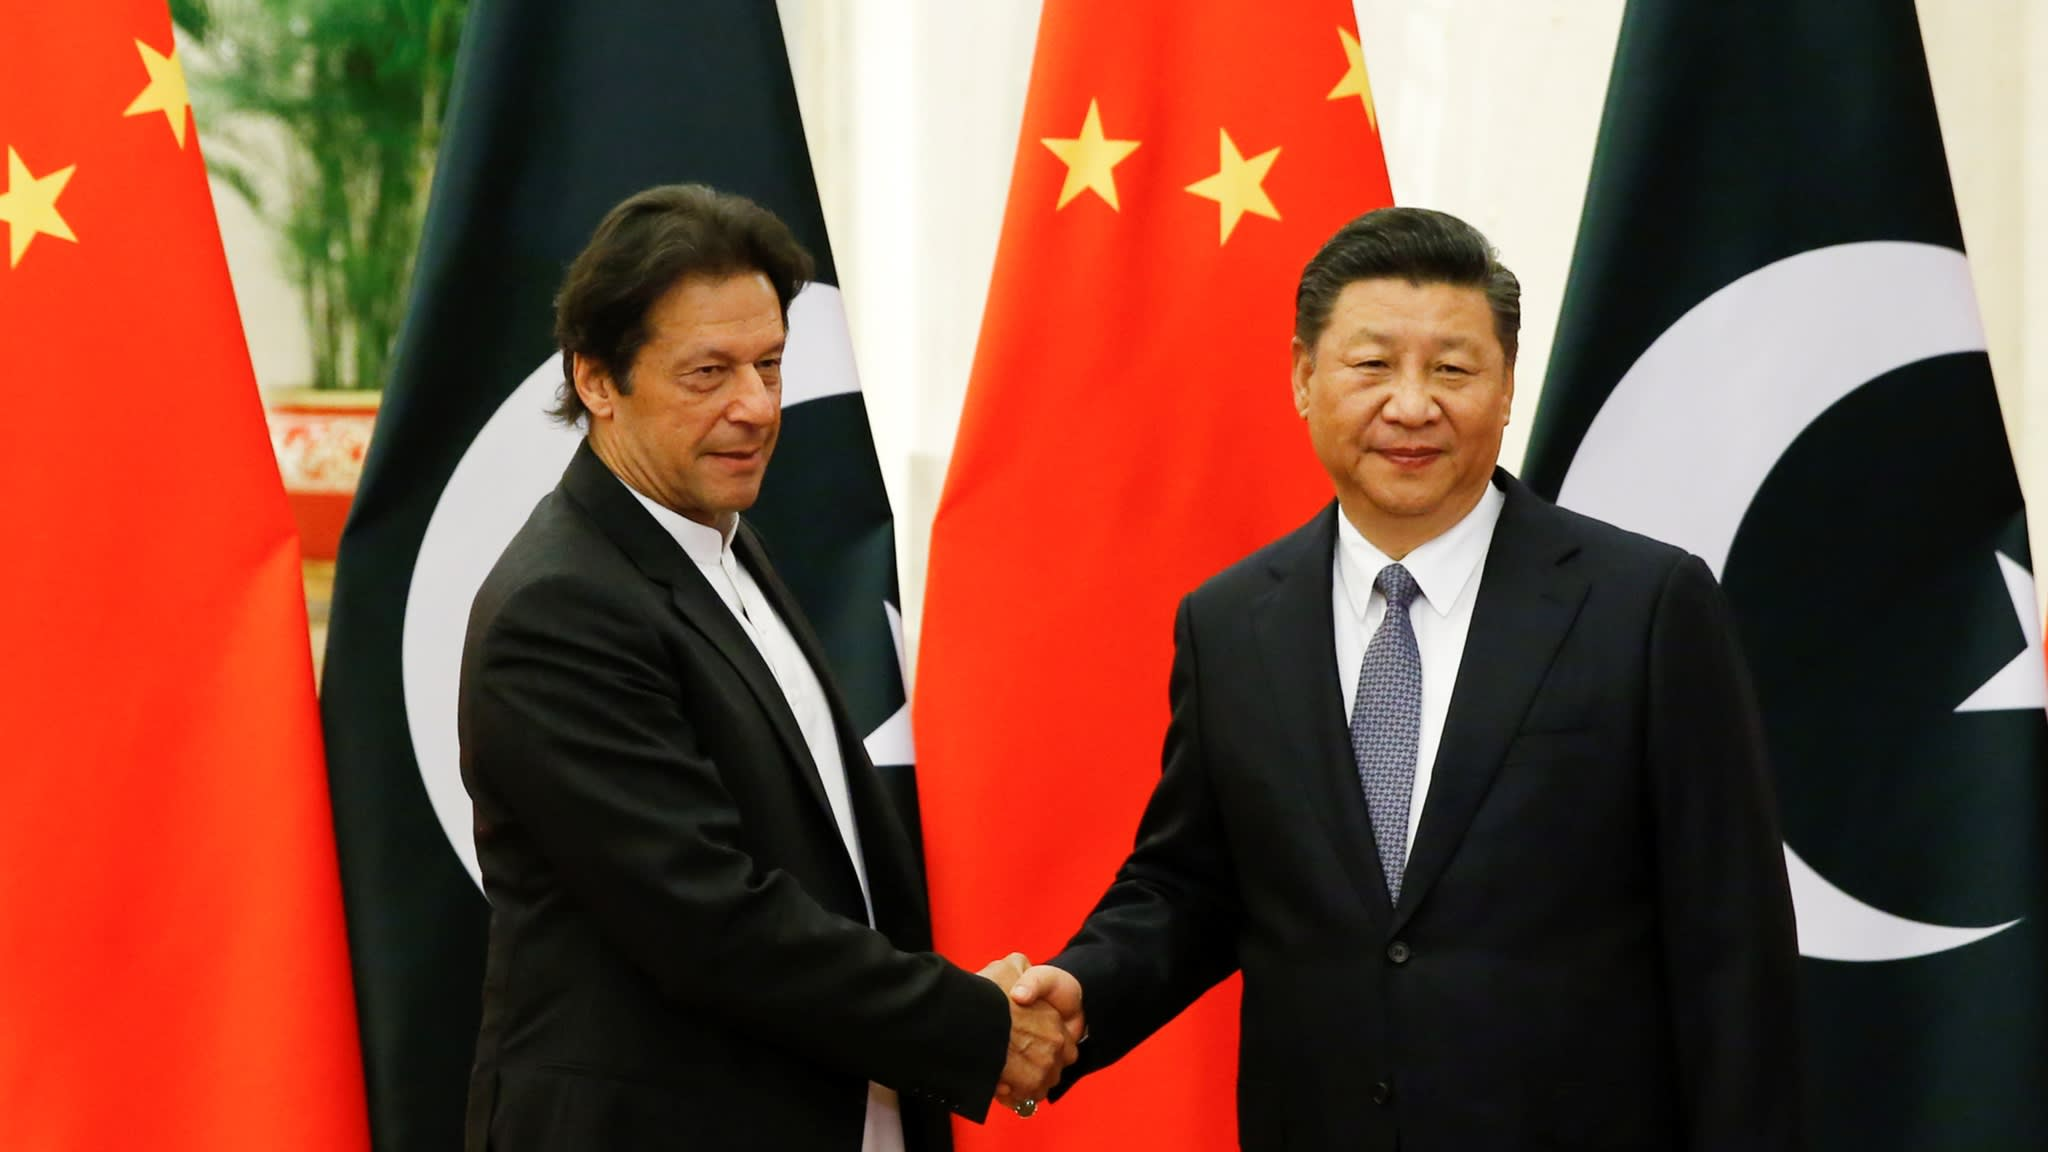 Imran seeks loan of 11 thousand crores from China, to repay Saudi debt